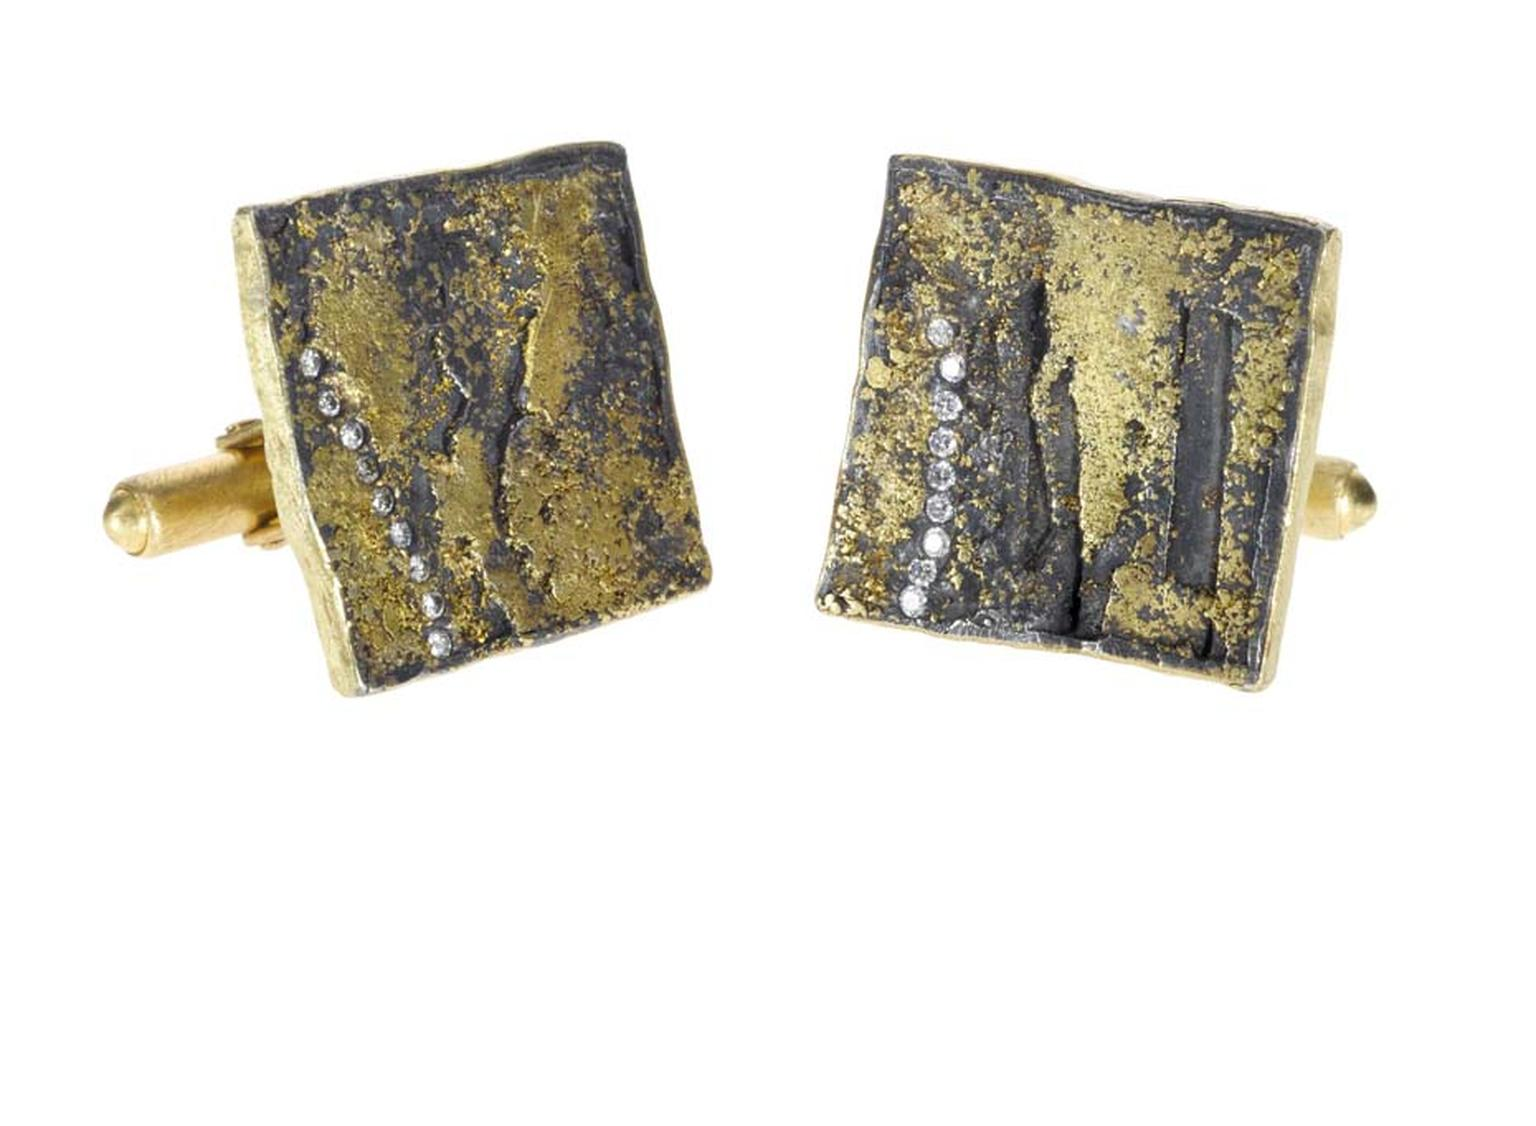 Yellow gold cufflinks from the Todd Reed Men's Jewelry Collection with a silver patina, set with brilliant-cut diamonds.